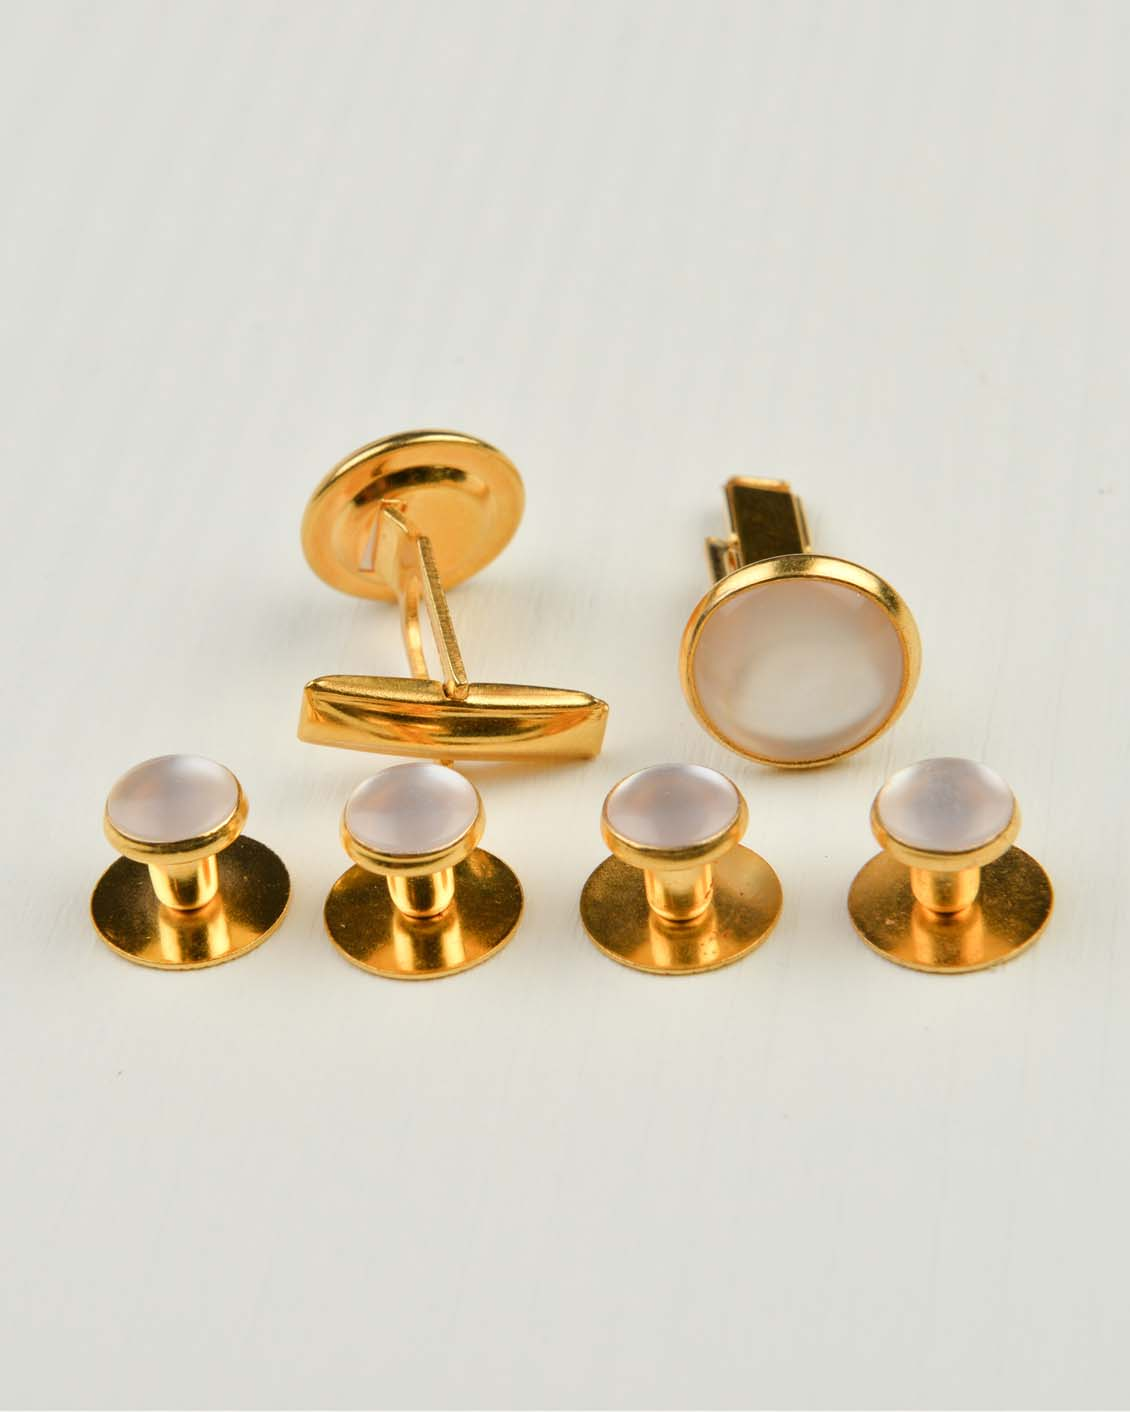 White and Gold Button Studs & Cuff Links